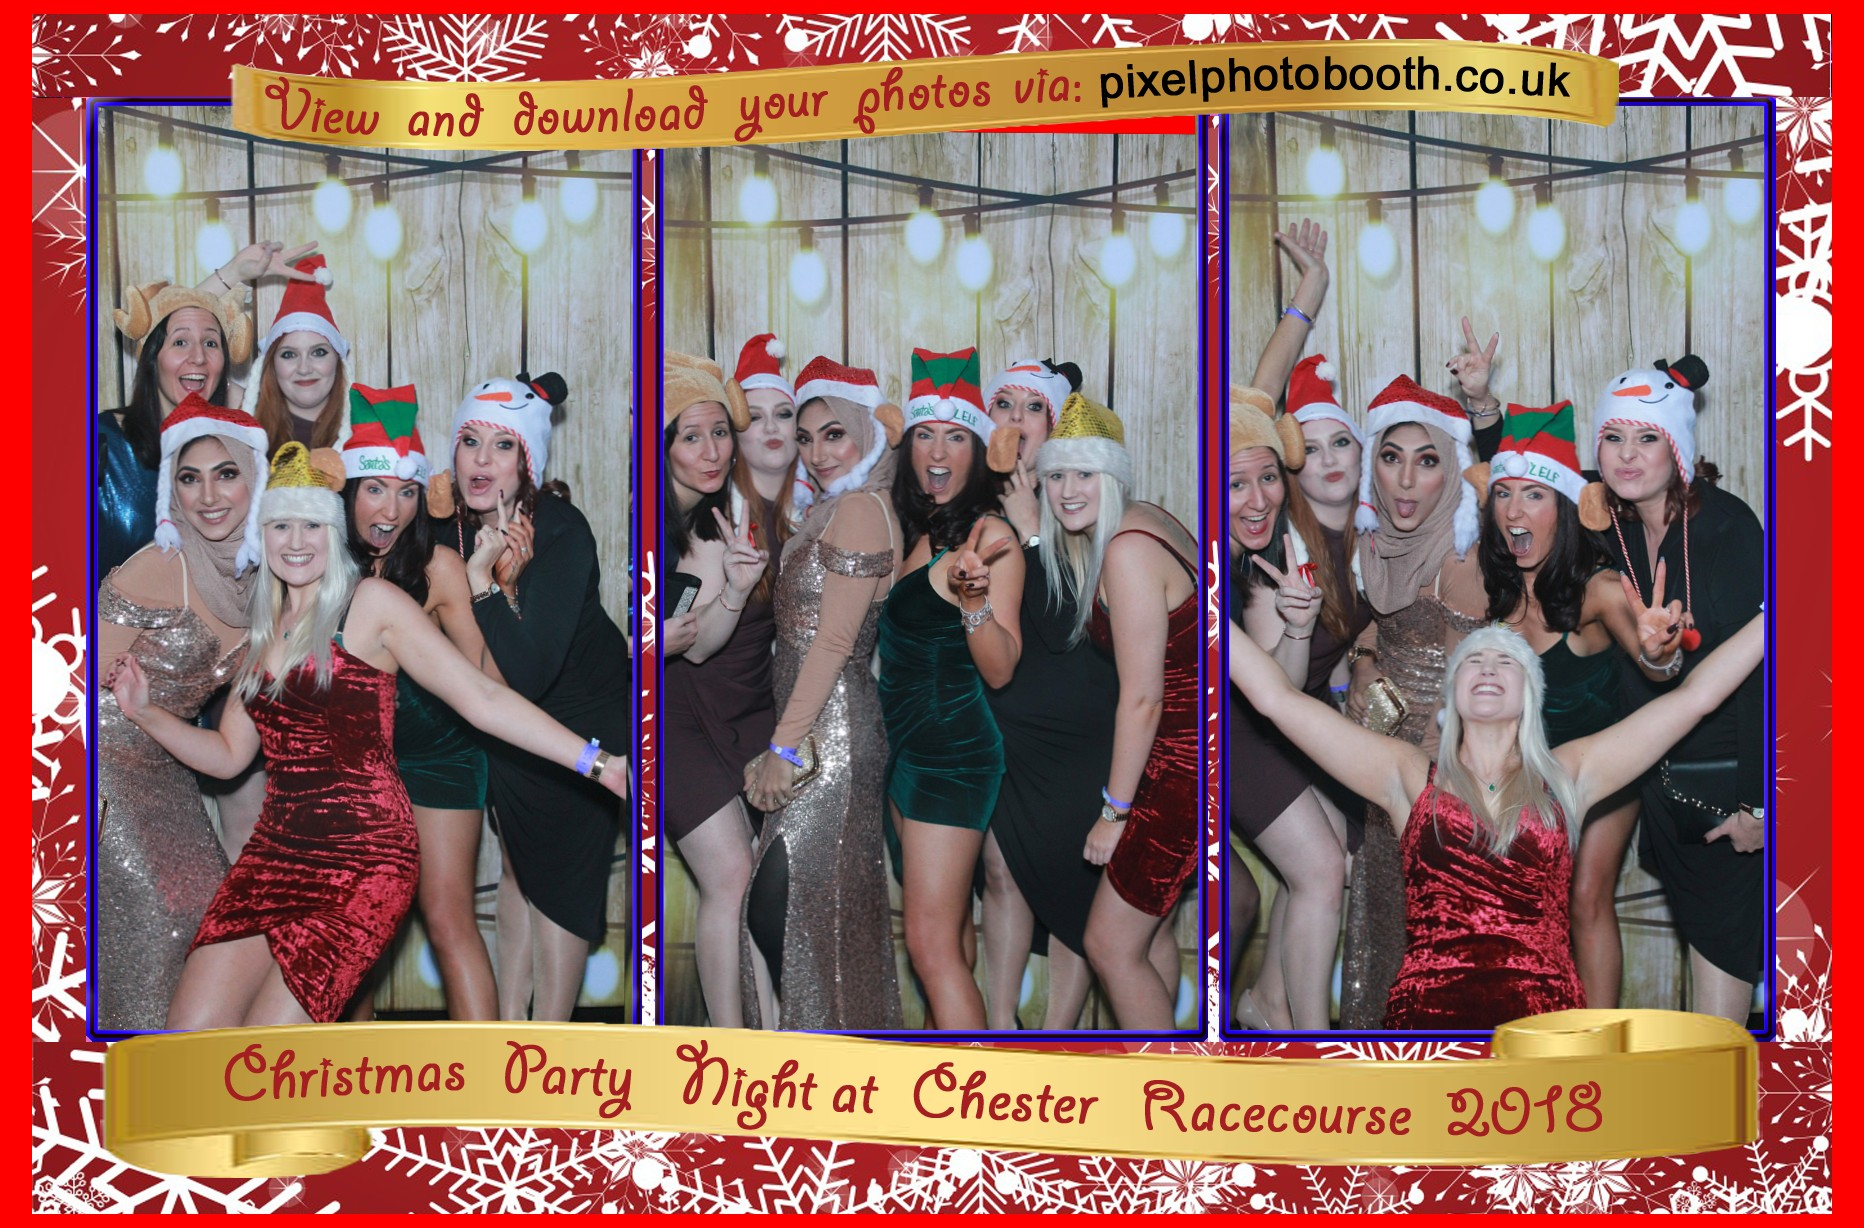 14th Dec 2018: Chester Racecourse Christmas Party Night